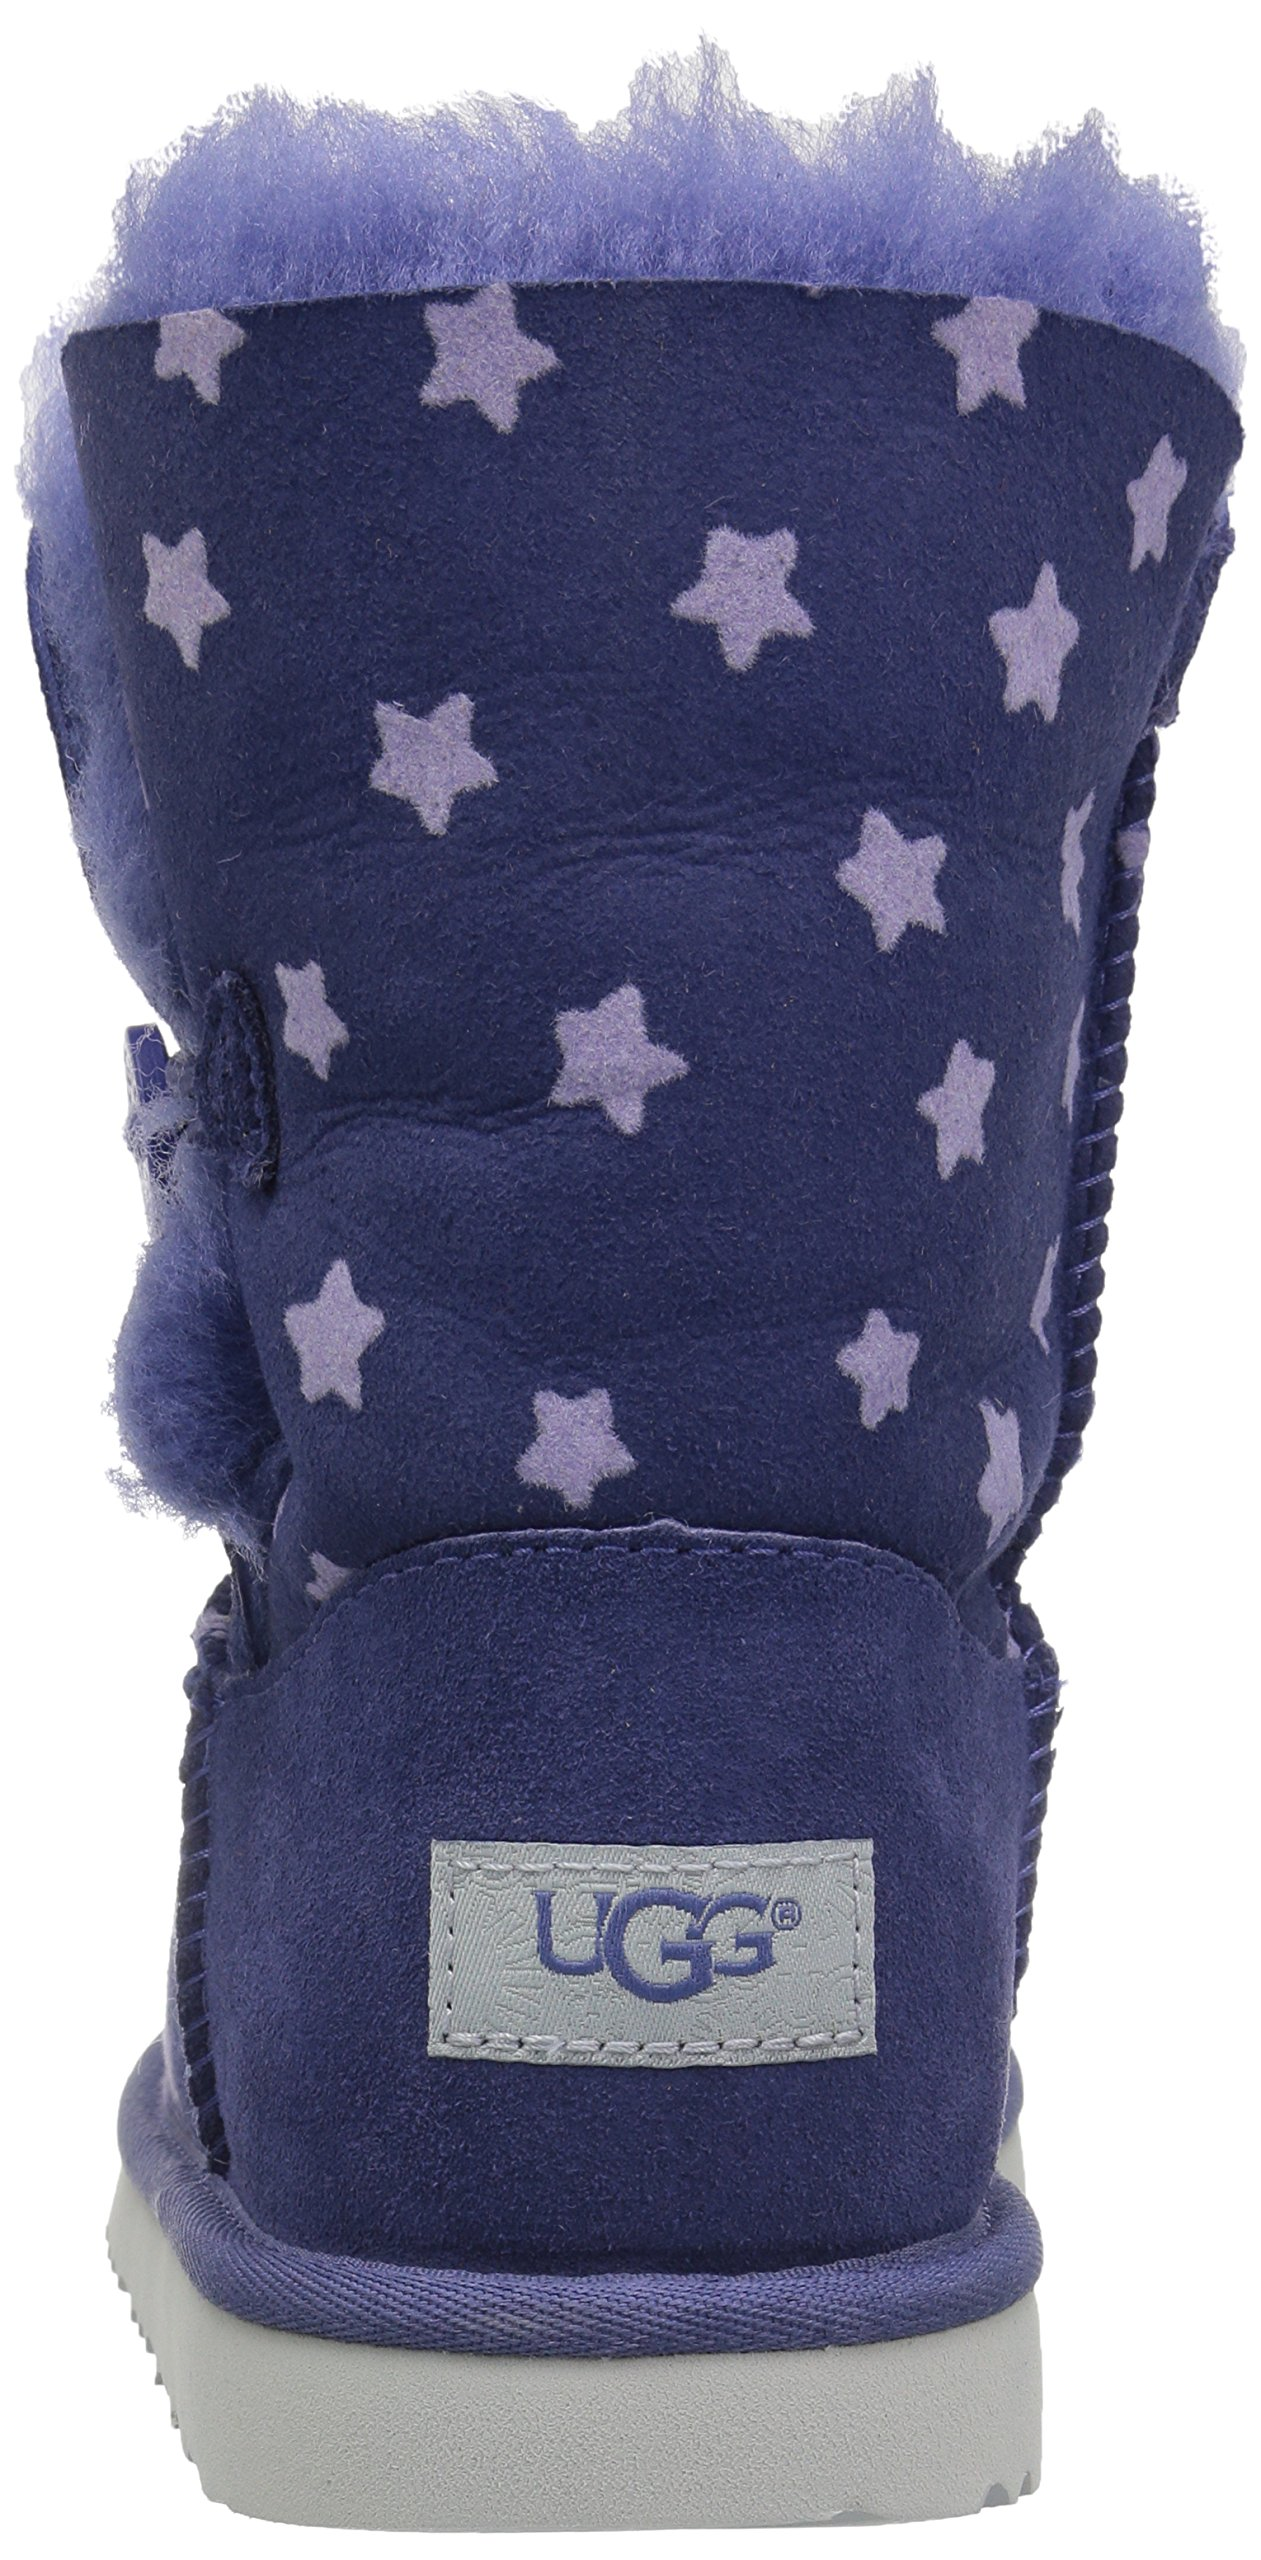 UGG Girls K Bailey Button II Stars Pull-On Boot, Nocturn, 1 M US Little Kid by UGG (Image #2)